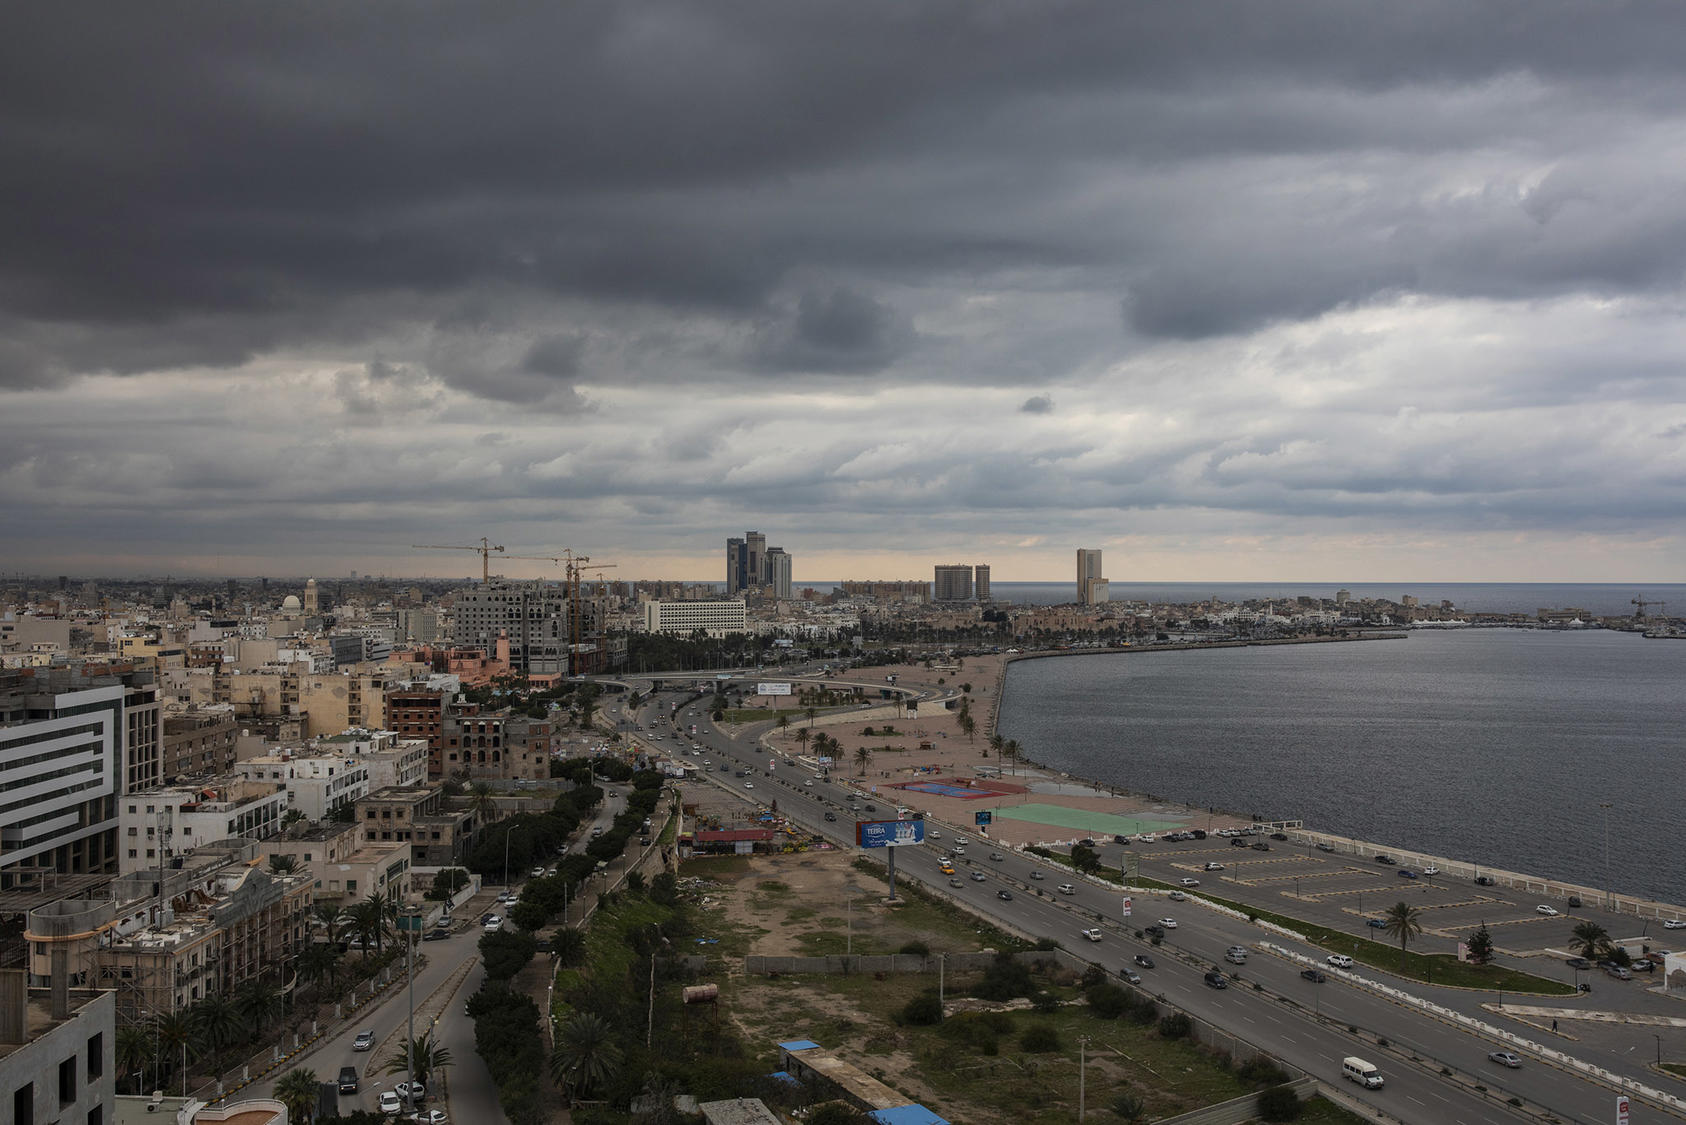 Tripoli, Libya on Thursday, Jan. 16, 2020, where residents hold out little hope that a conference aimed at arresting Libya's degeneration into a multinational free-for-all will succeed. (Ivor Prickett/The New York Times)